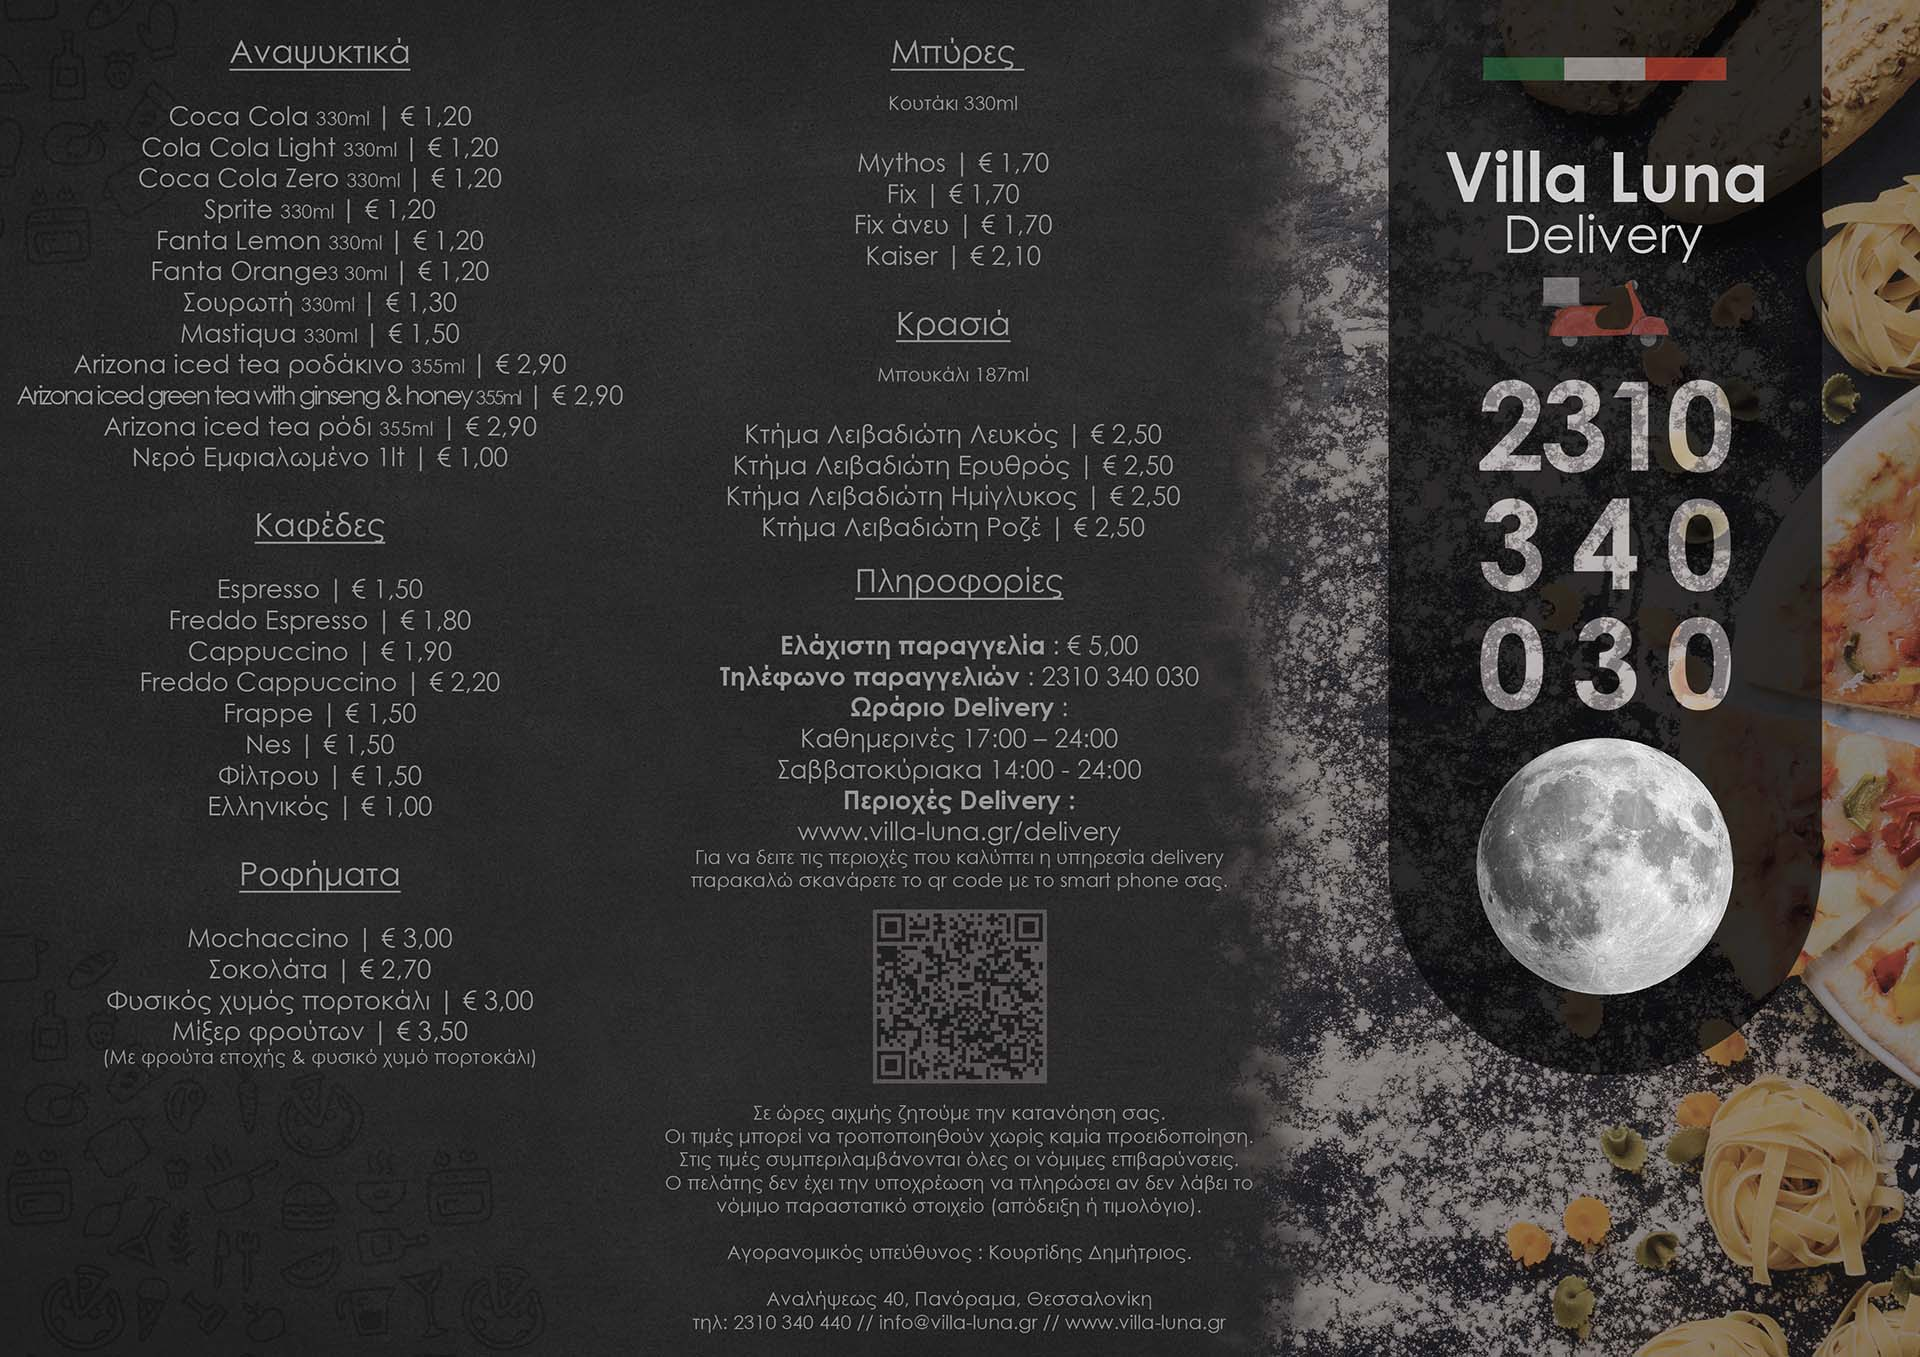 //www.villa-luna.gr/wp-content/uploads/web-delivery_outside.jpg